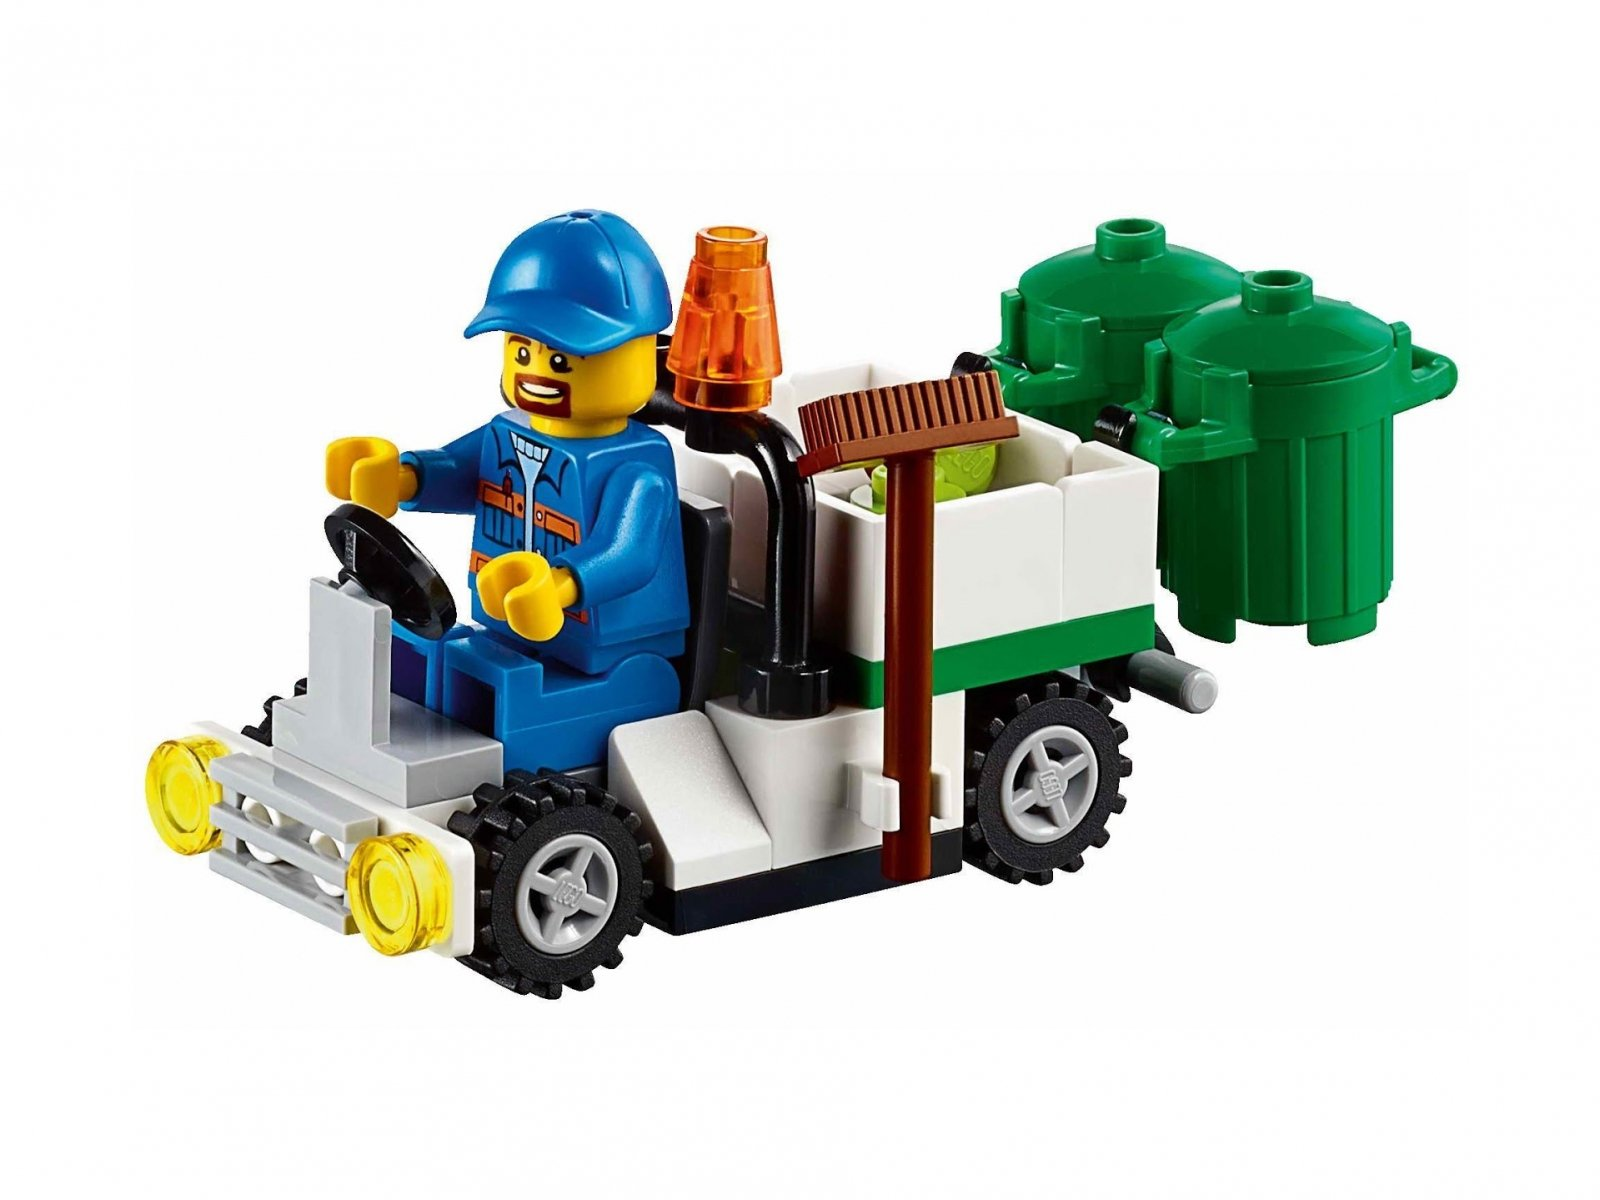 LEGO City Garbage Truck 30313